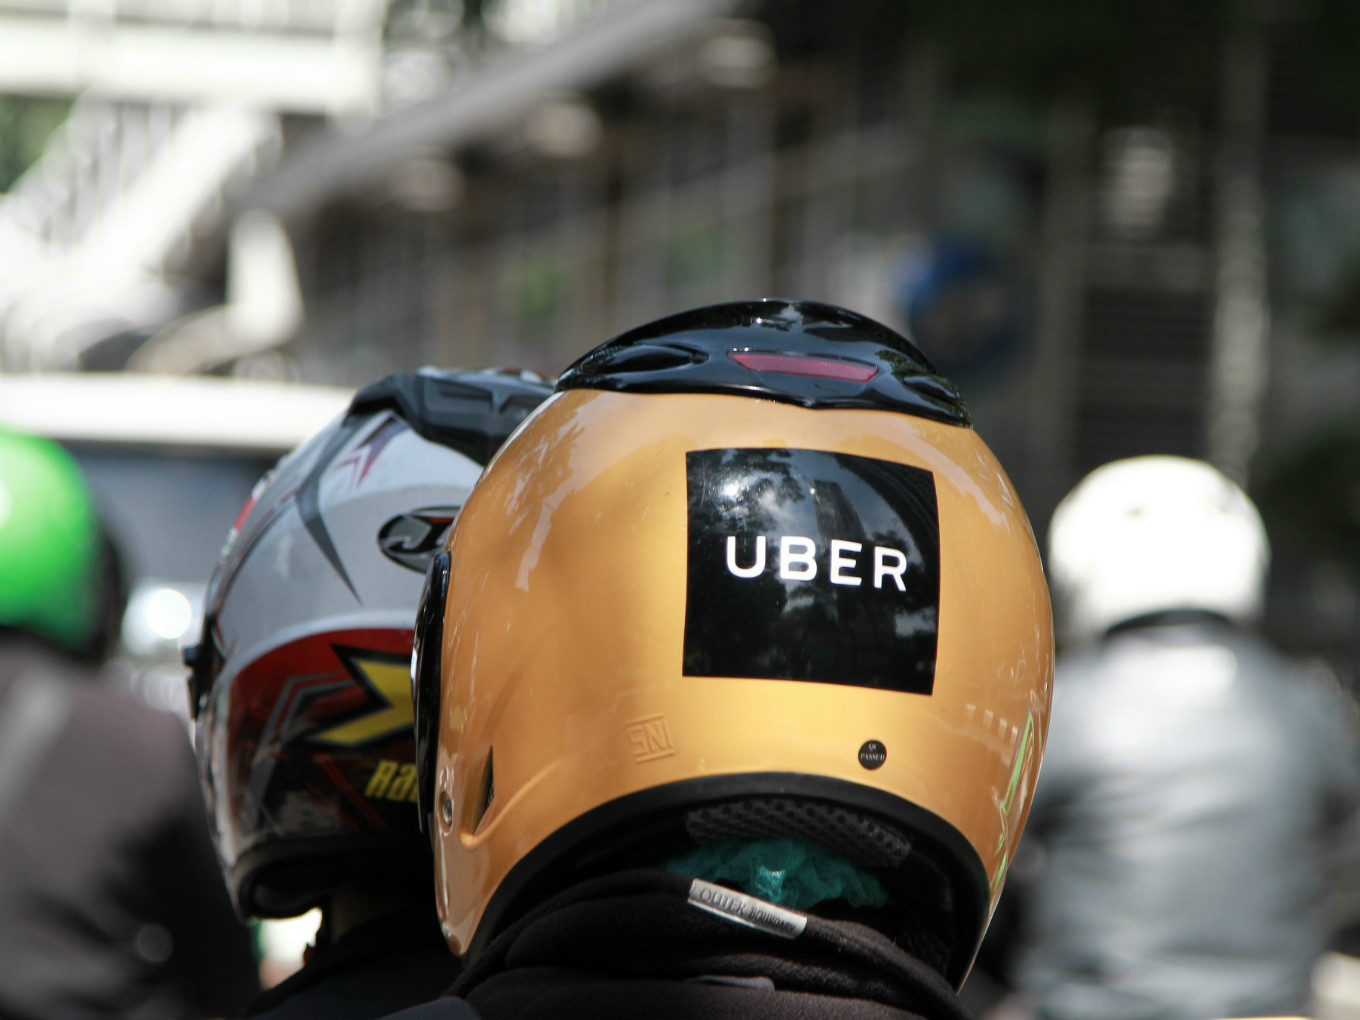 Uber files paperwork to go public in listing that may eclipse Alibaba